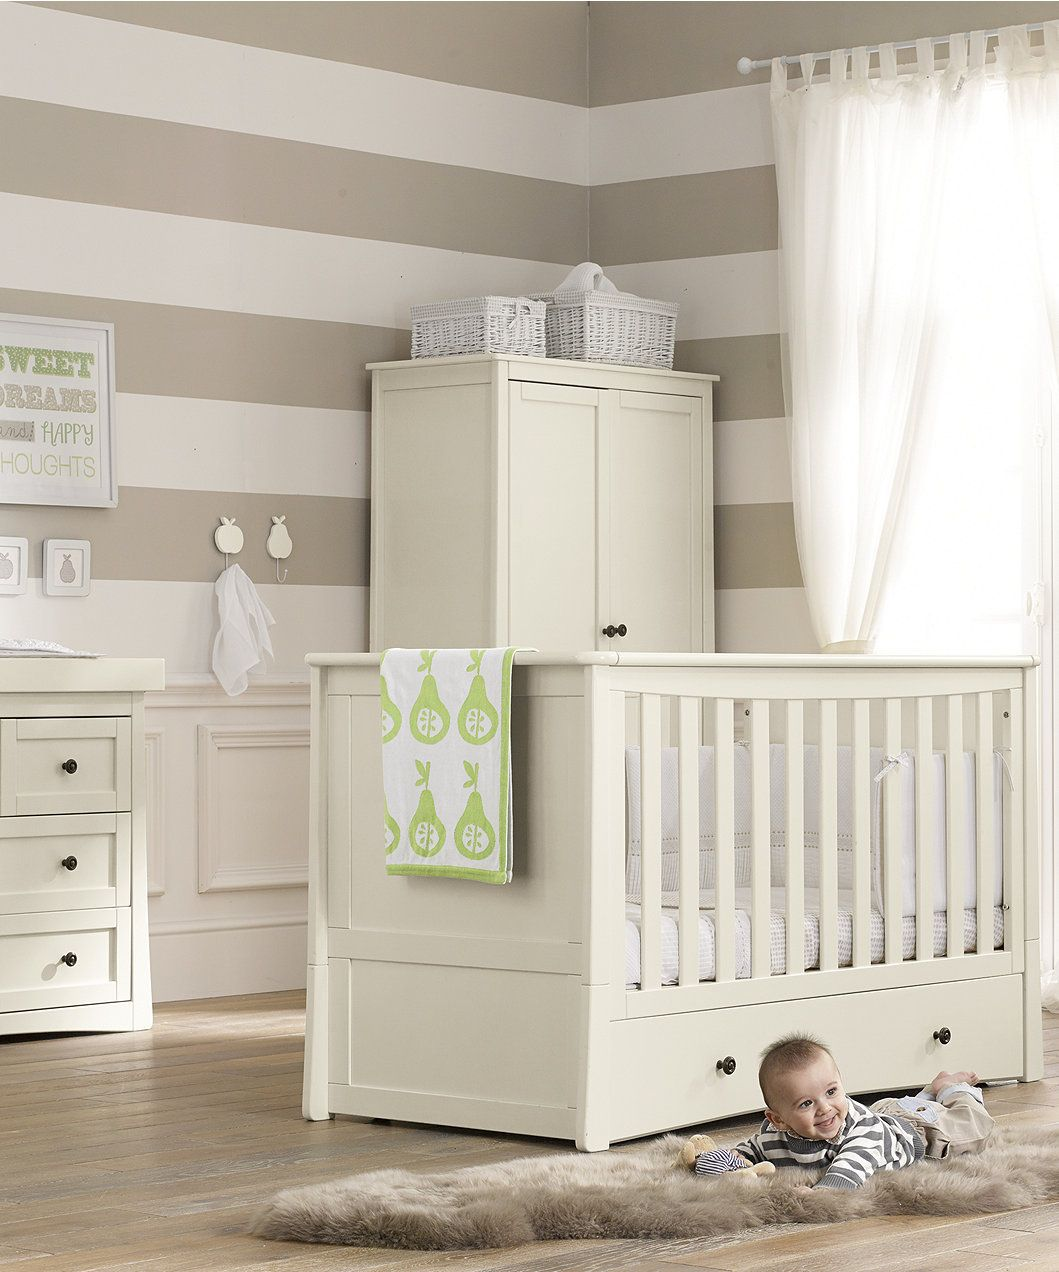 Mothercare Harrogate Cot Bed - Almond  Baby cot bedding, Nursery